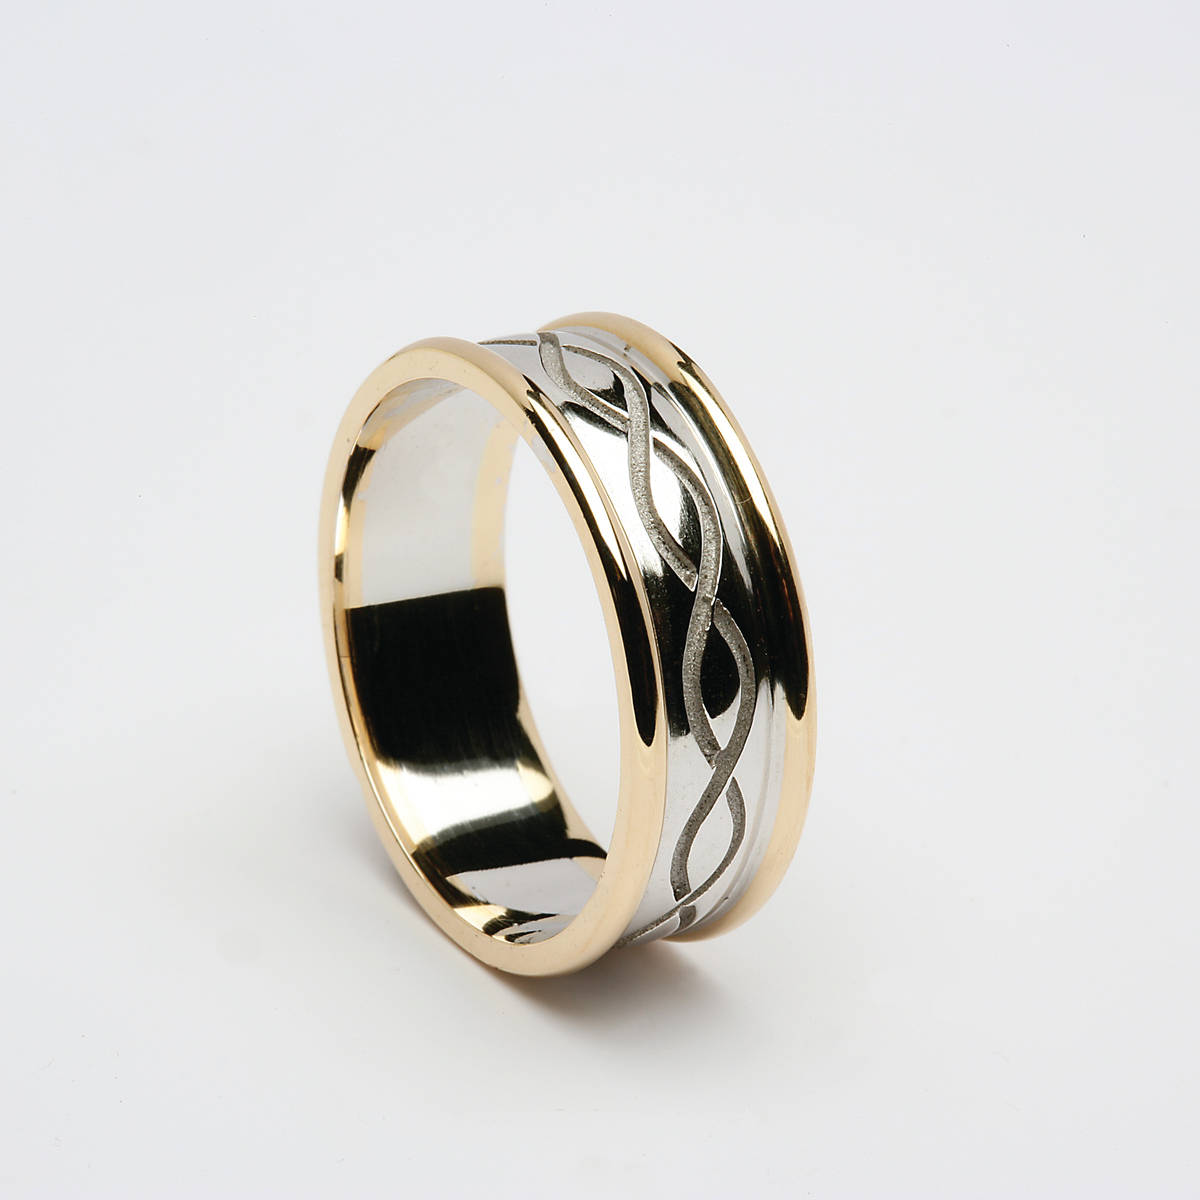 18 carat white gold man's two linesinterwoven ring with yellow gold rims.a beautifully crafted ring which is very comfortable to wear.